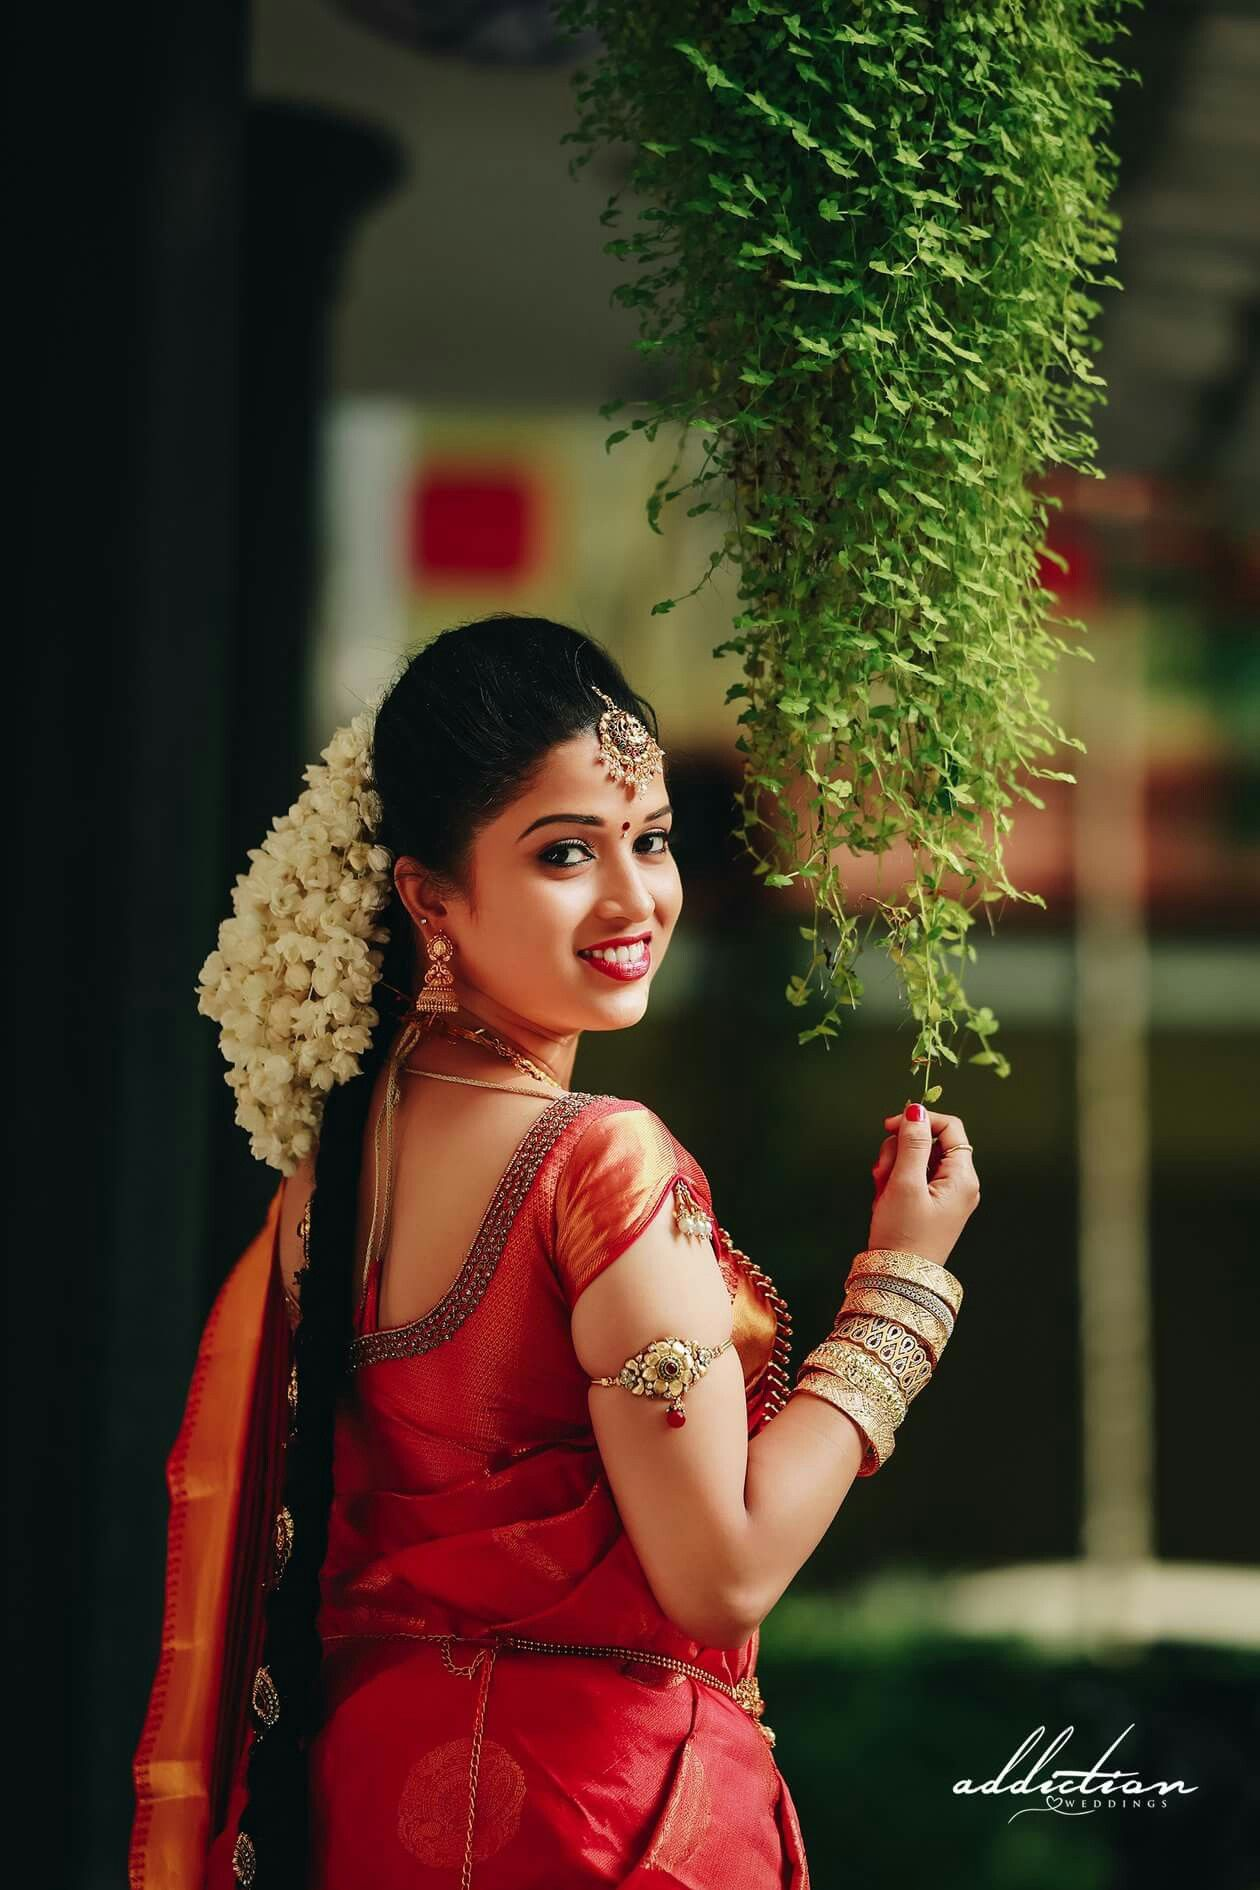 Pin by Almeena on Klicks | Kerala wedding photography, Indian wedding couple photography